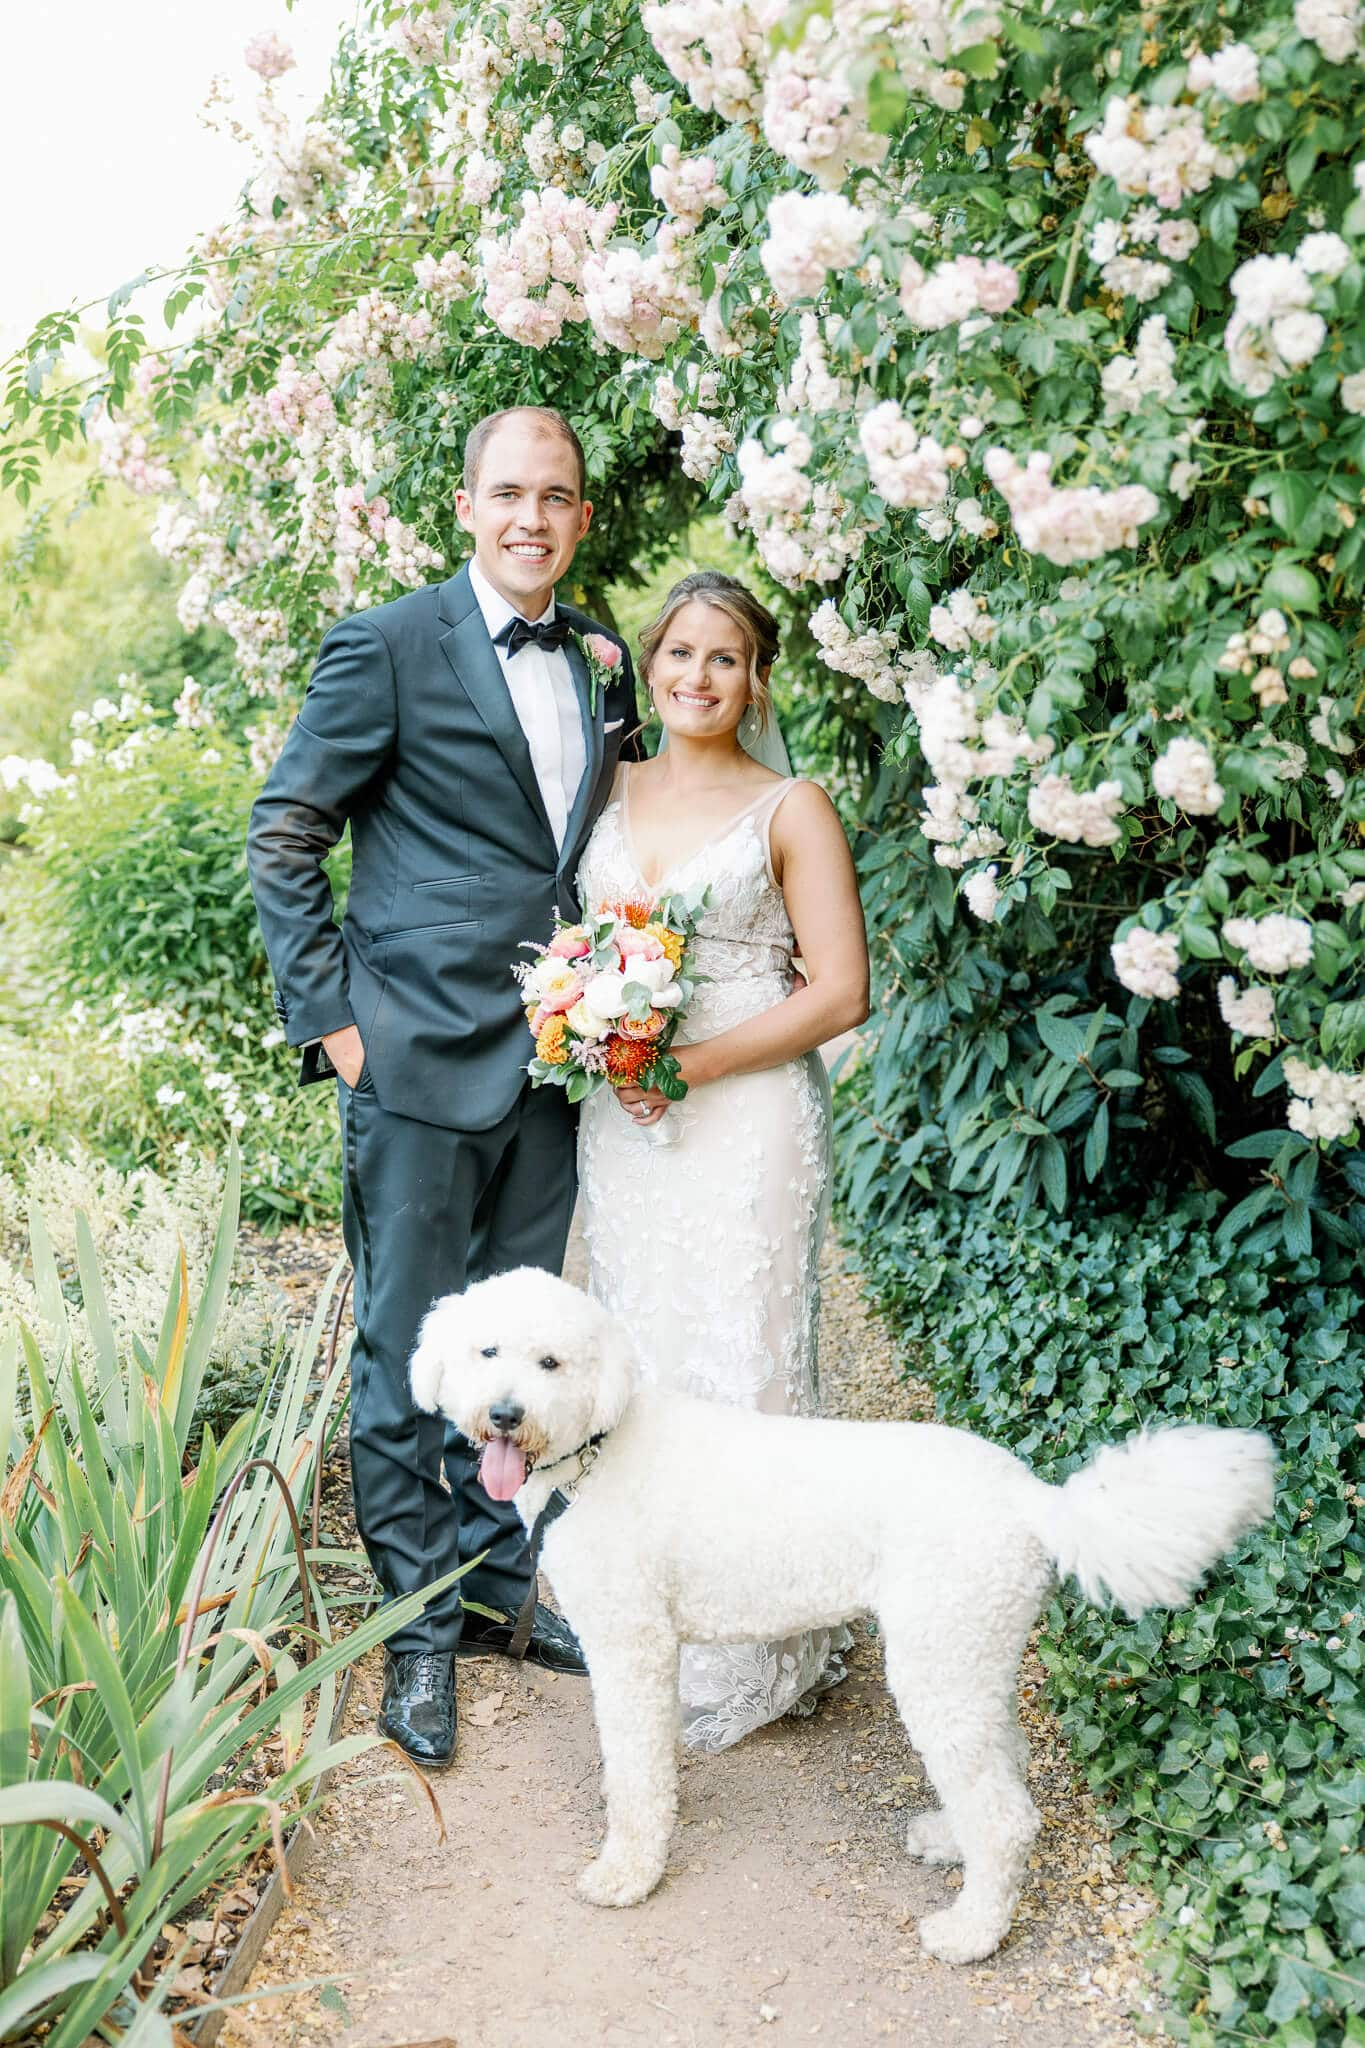 Cliveden House wedding photography with dog in Japanese Gardens | Wedding locations Berkshire